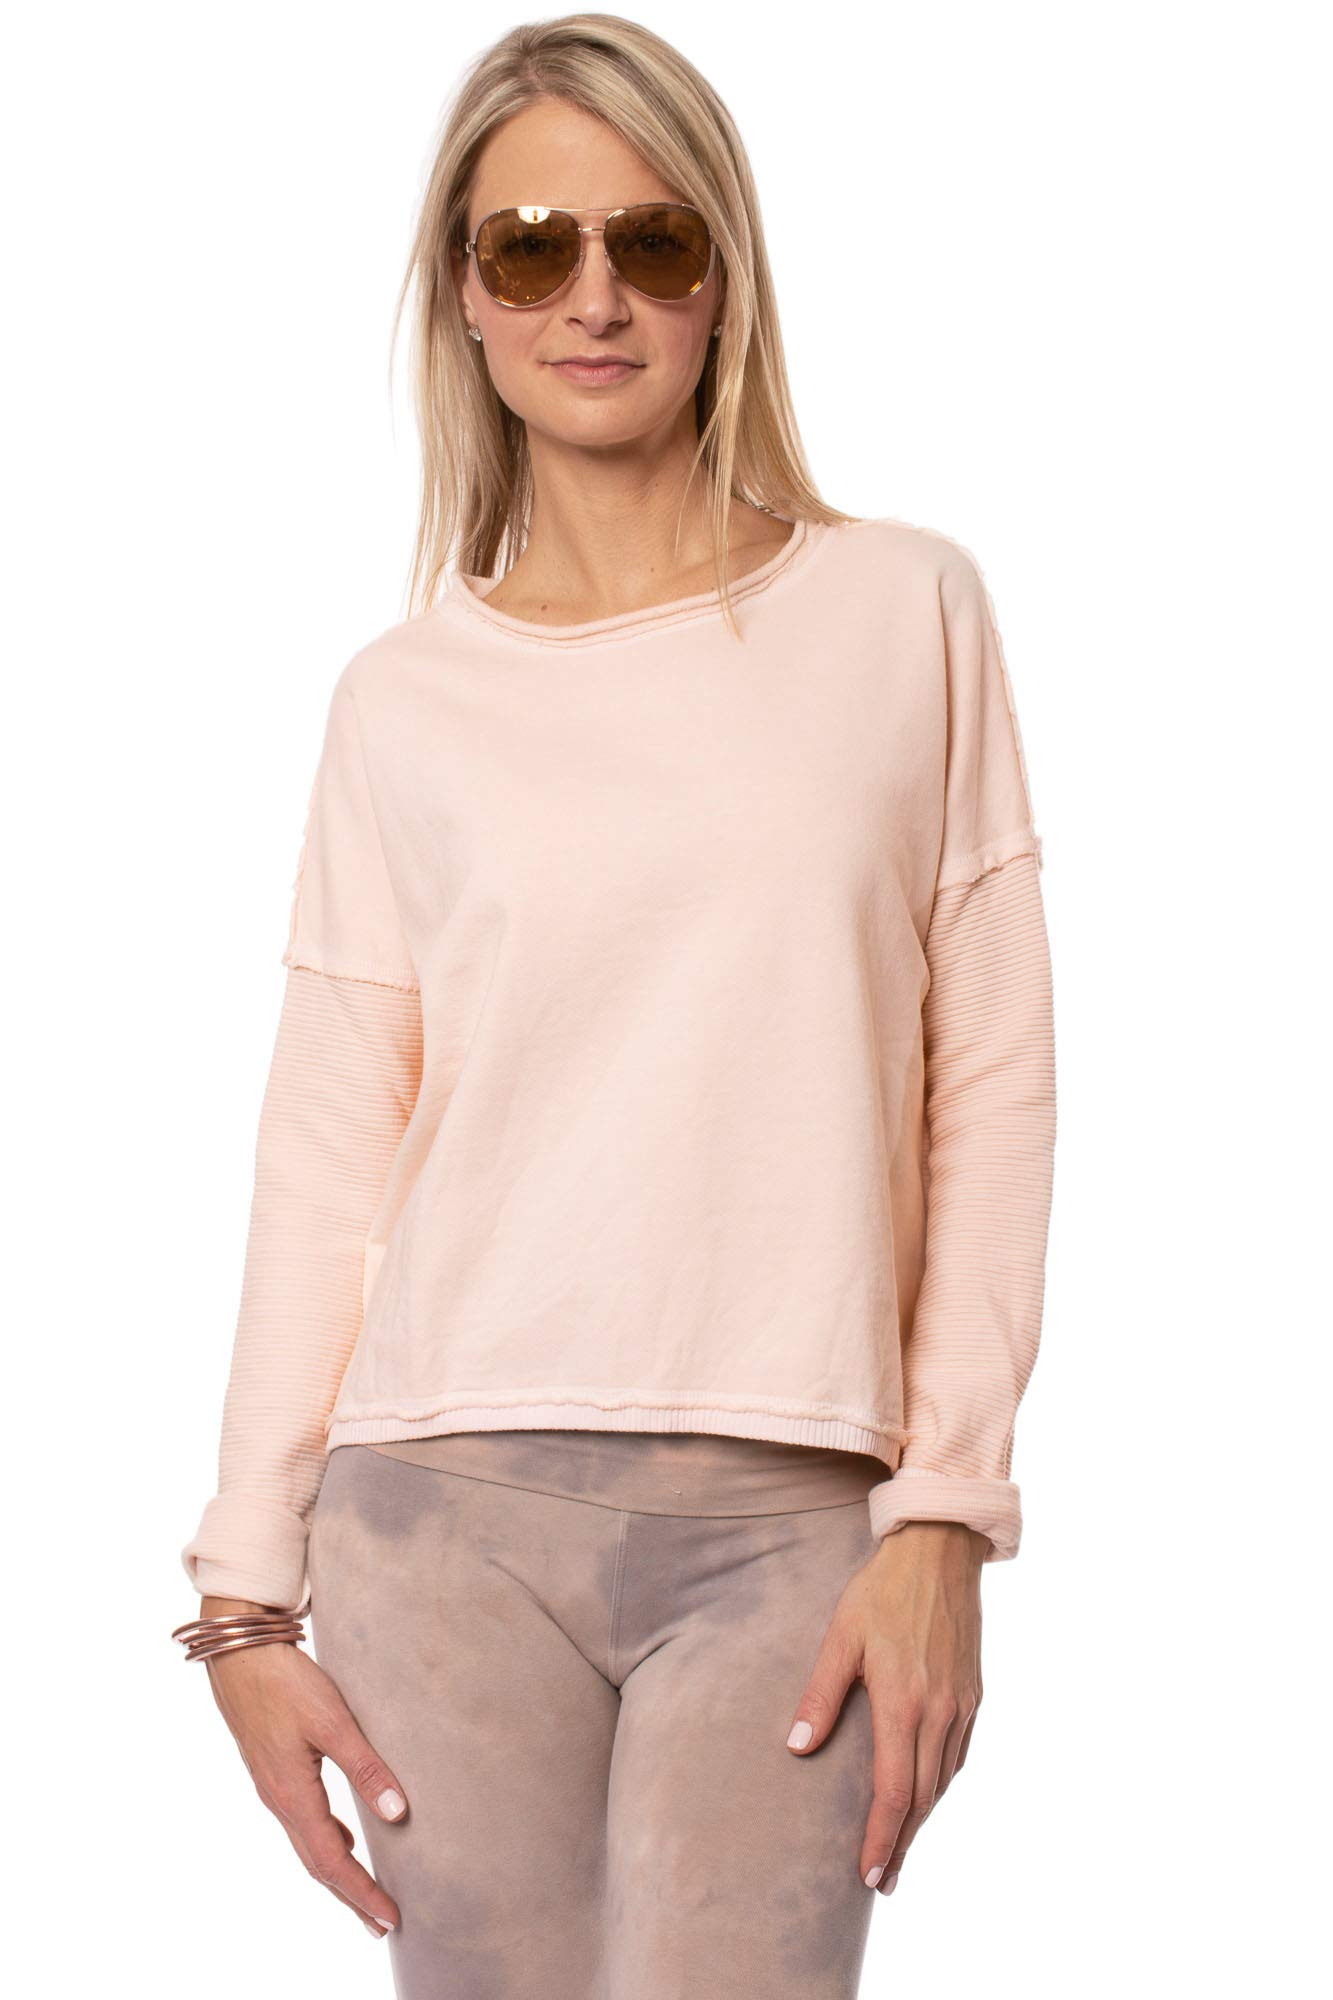 Hard Tail Forever - Crystal Fleece Ribbed Raw Edge Sweater (CRY-03, Apple Blossom) - XS